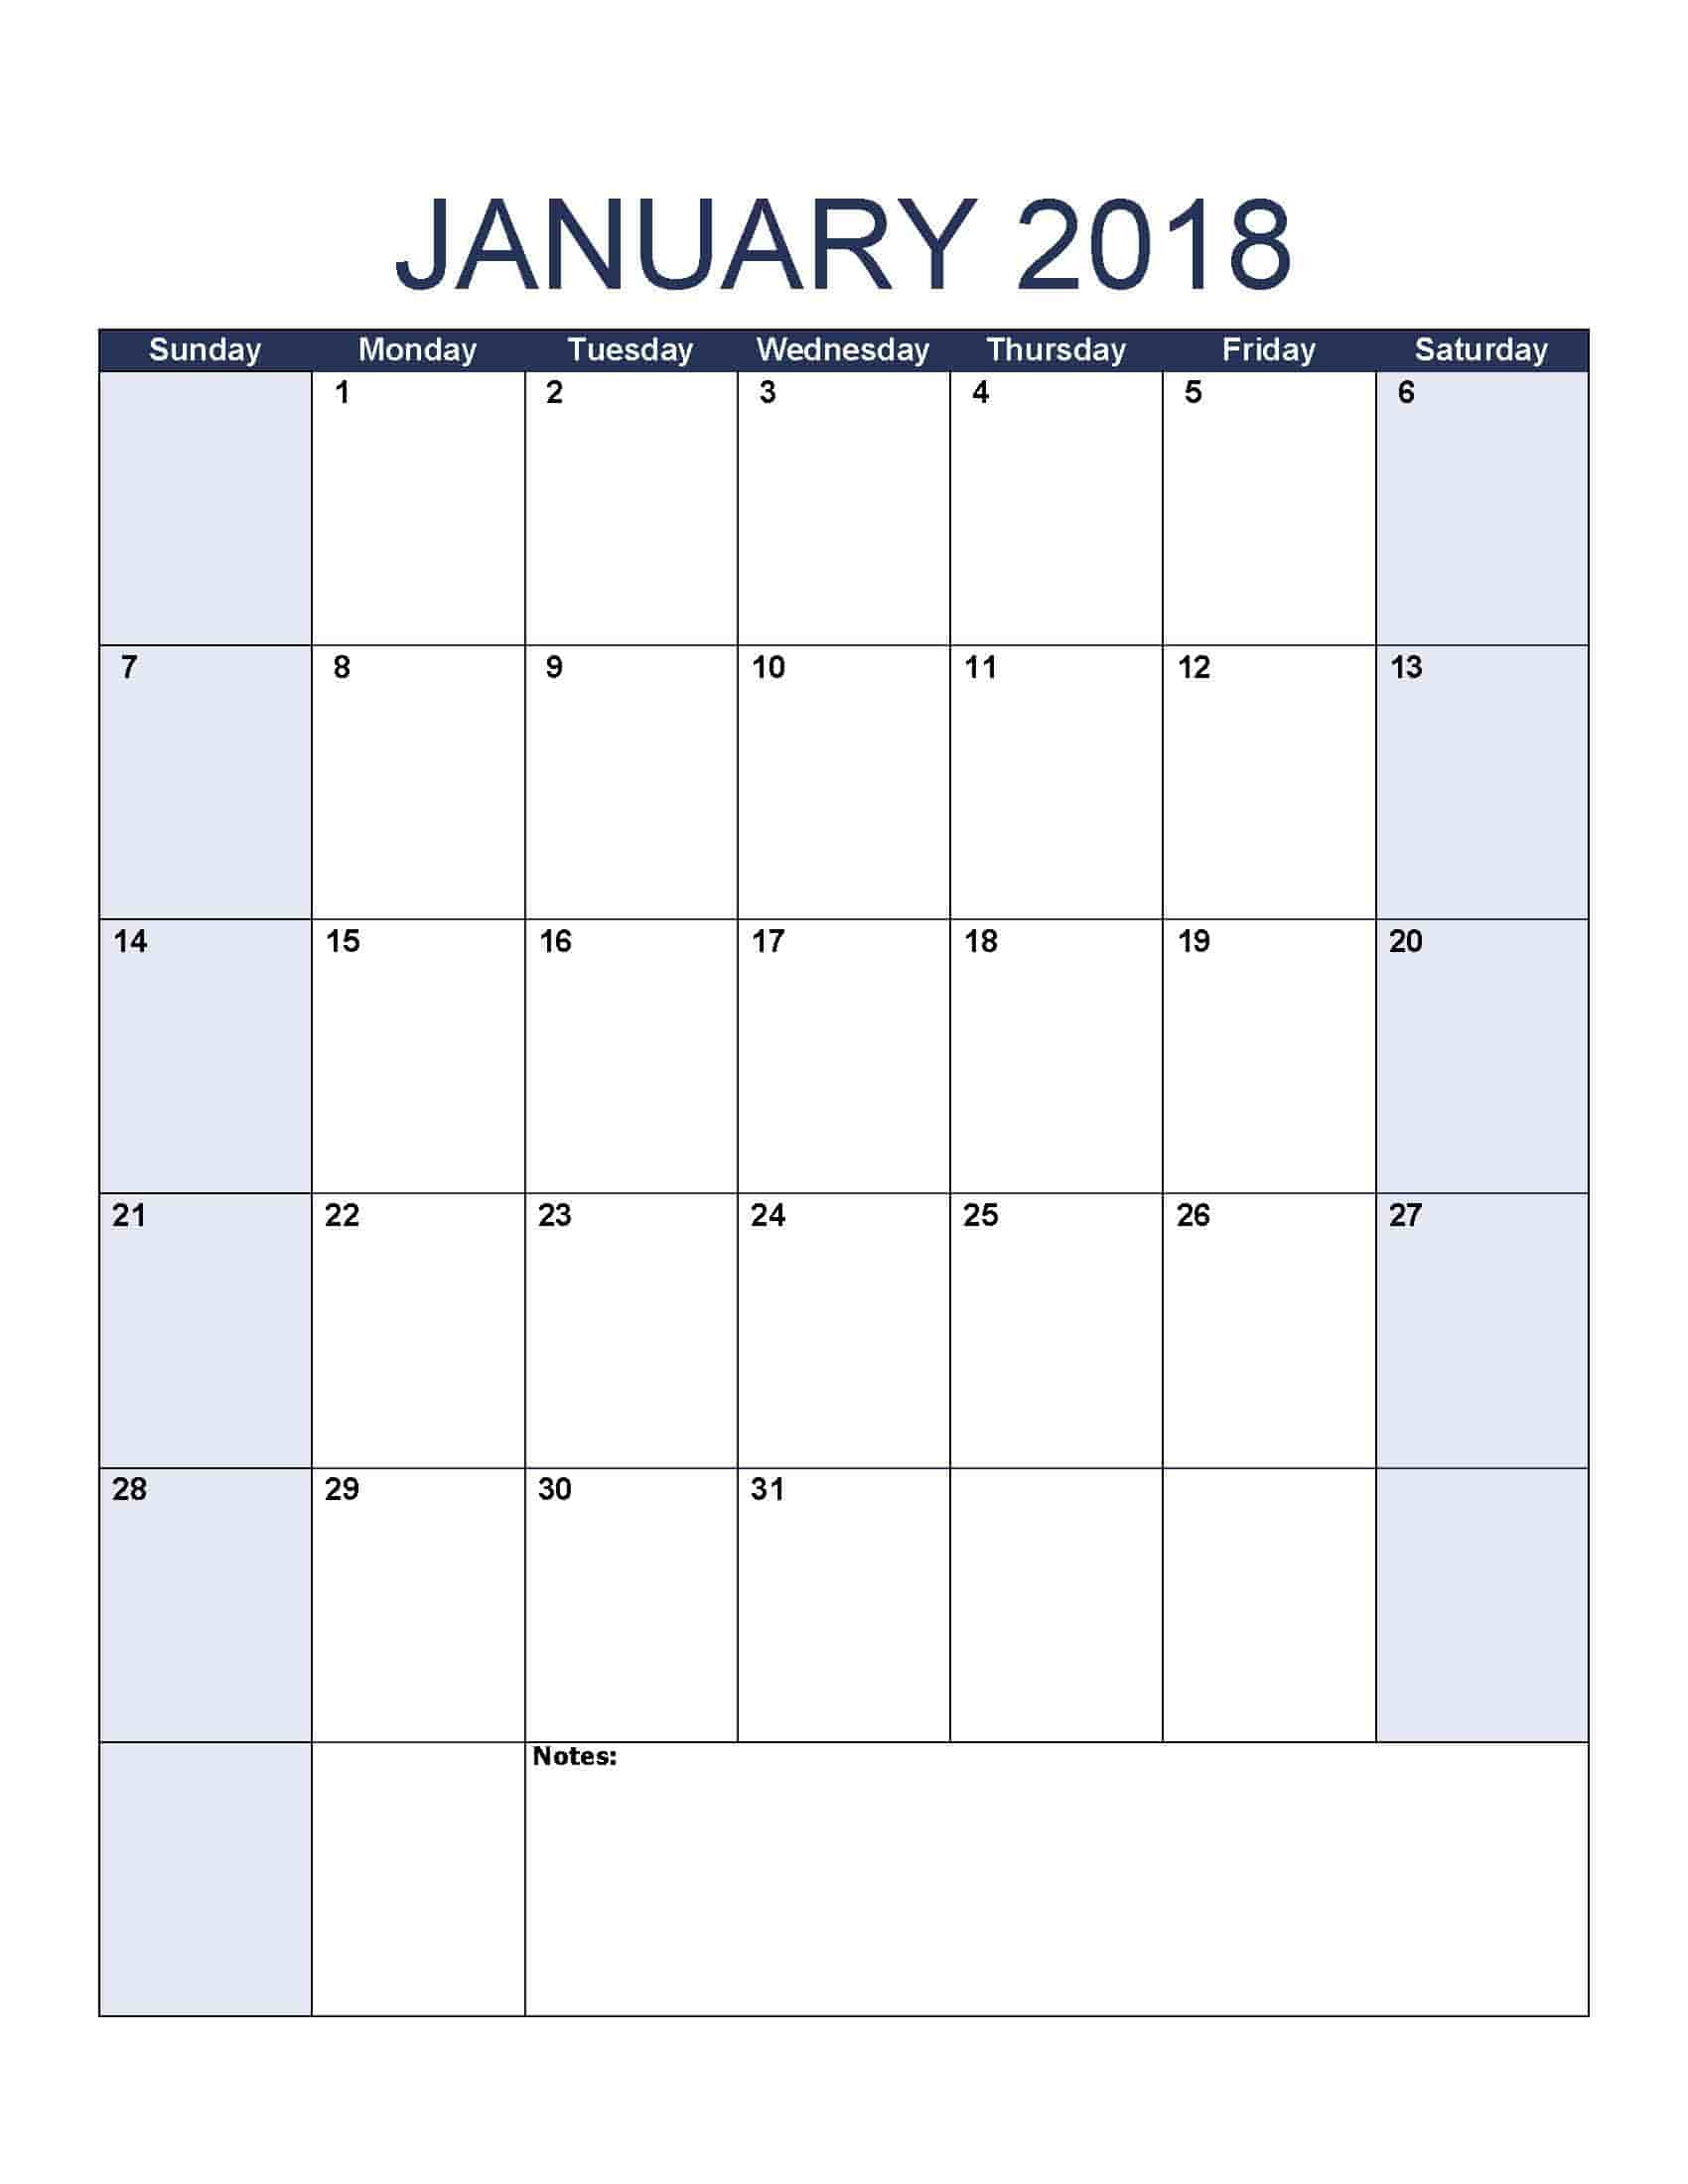 January 2018 Calendar - Free, Printable Calendar Templates intended for Print Blank Workday Calendar For August